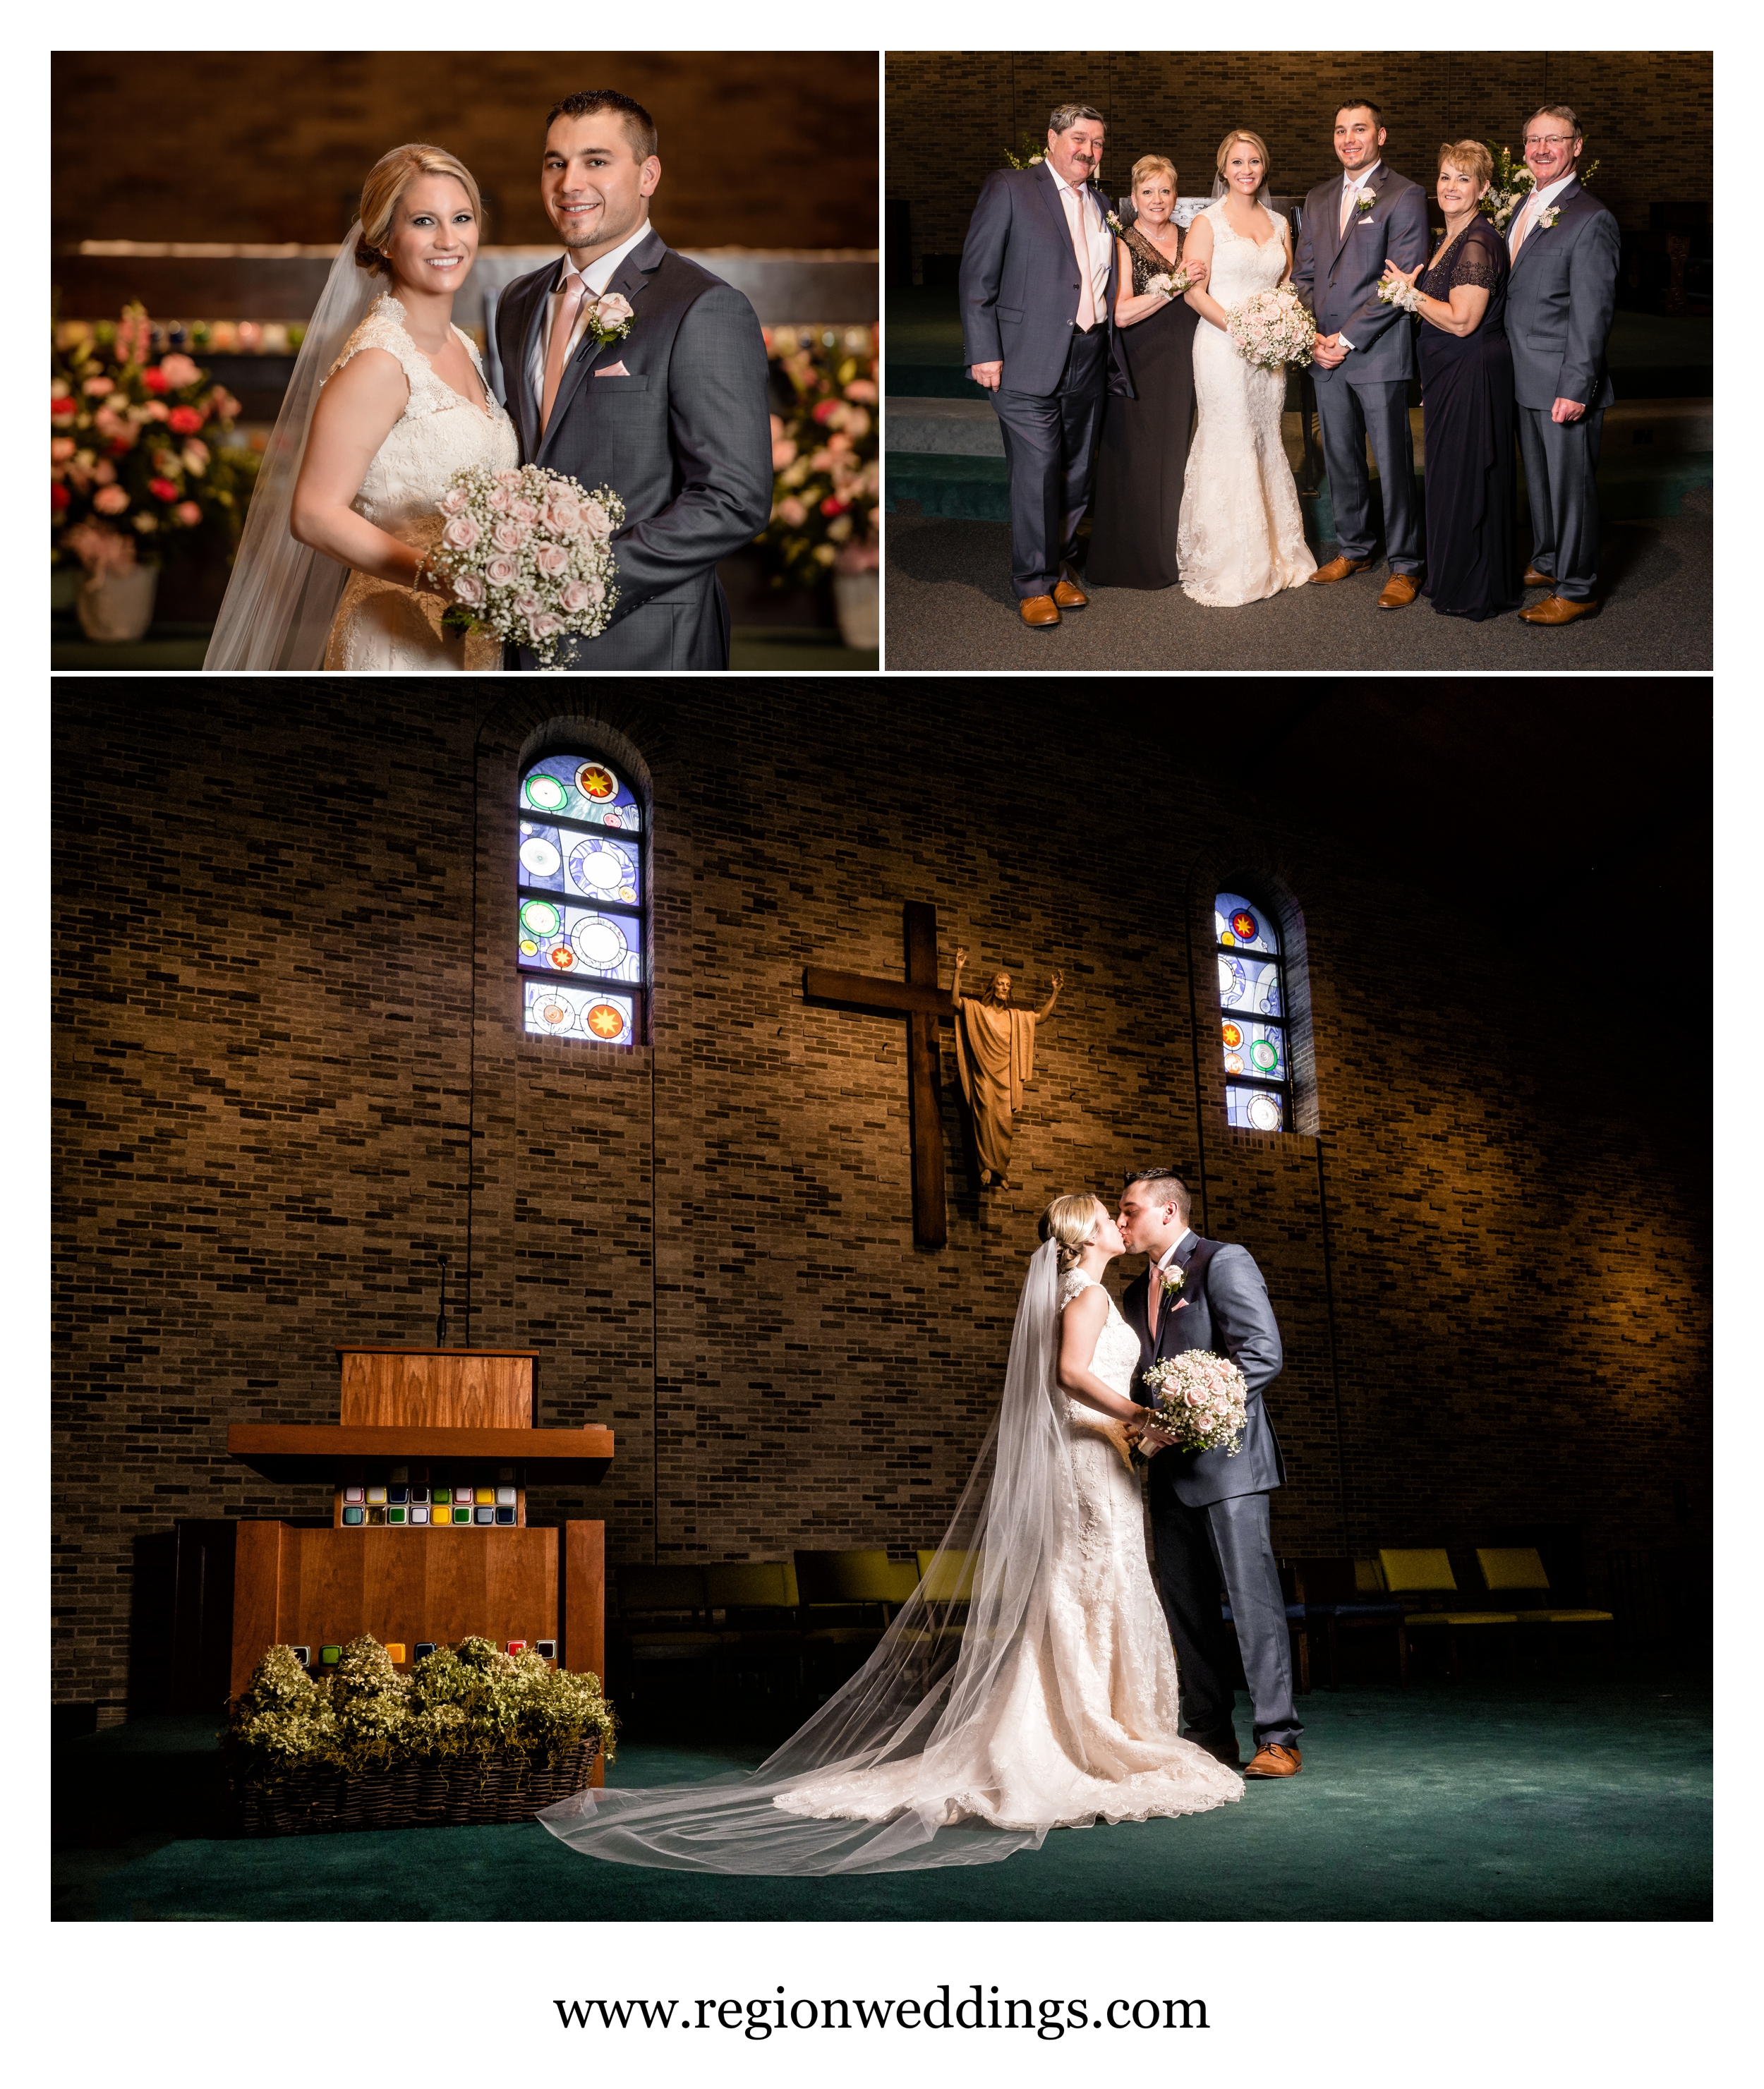 Parents and couples photos at St. Maria Goretti Church in Dyer, Indiana.